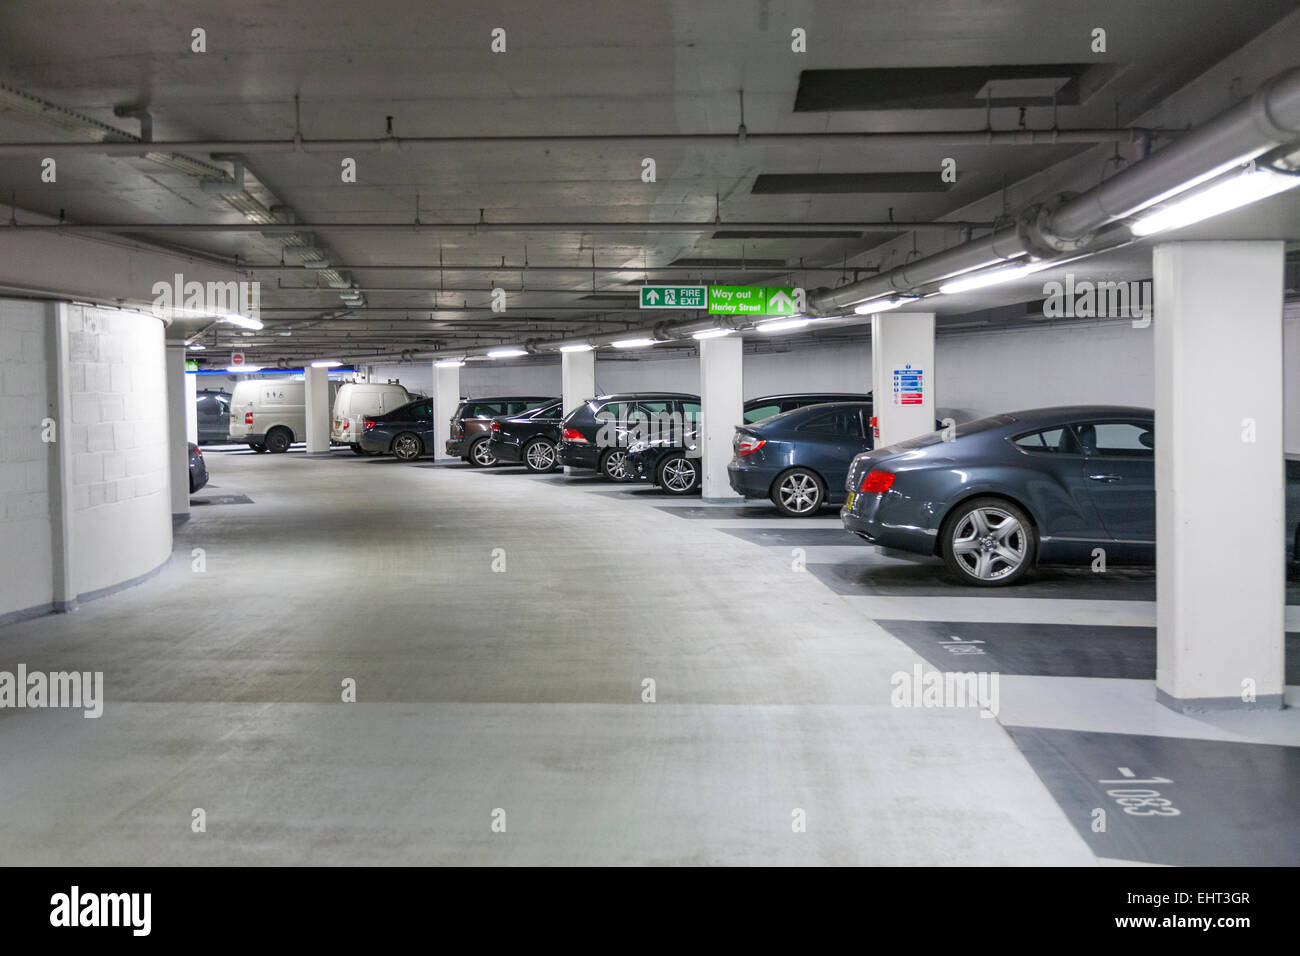 Car Parking Near Harrods